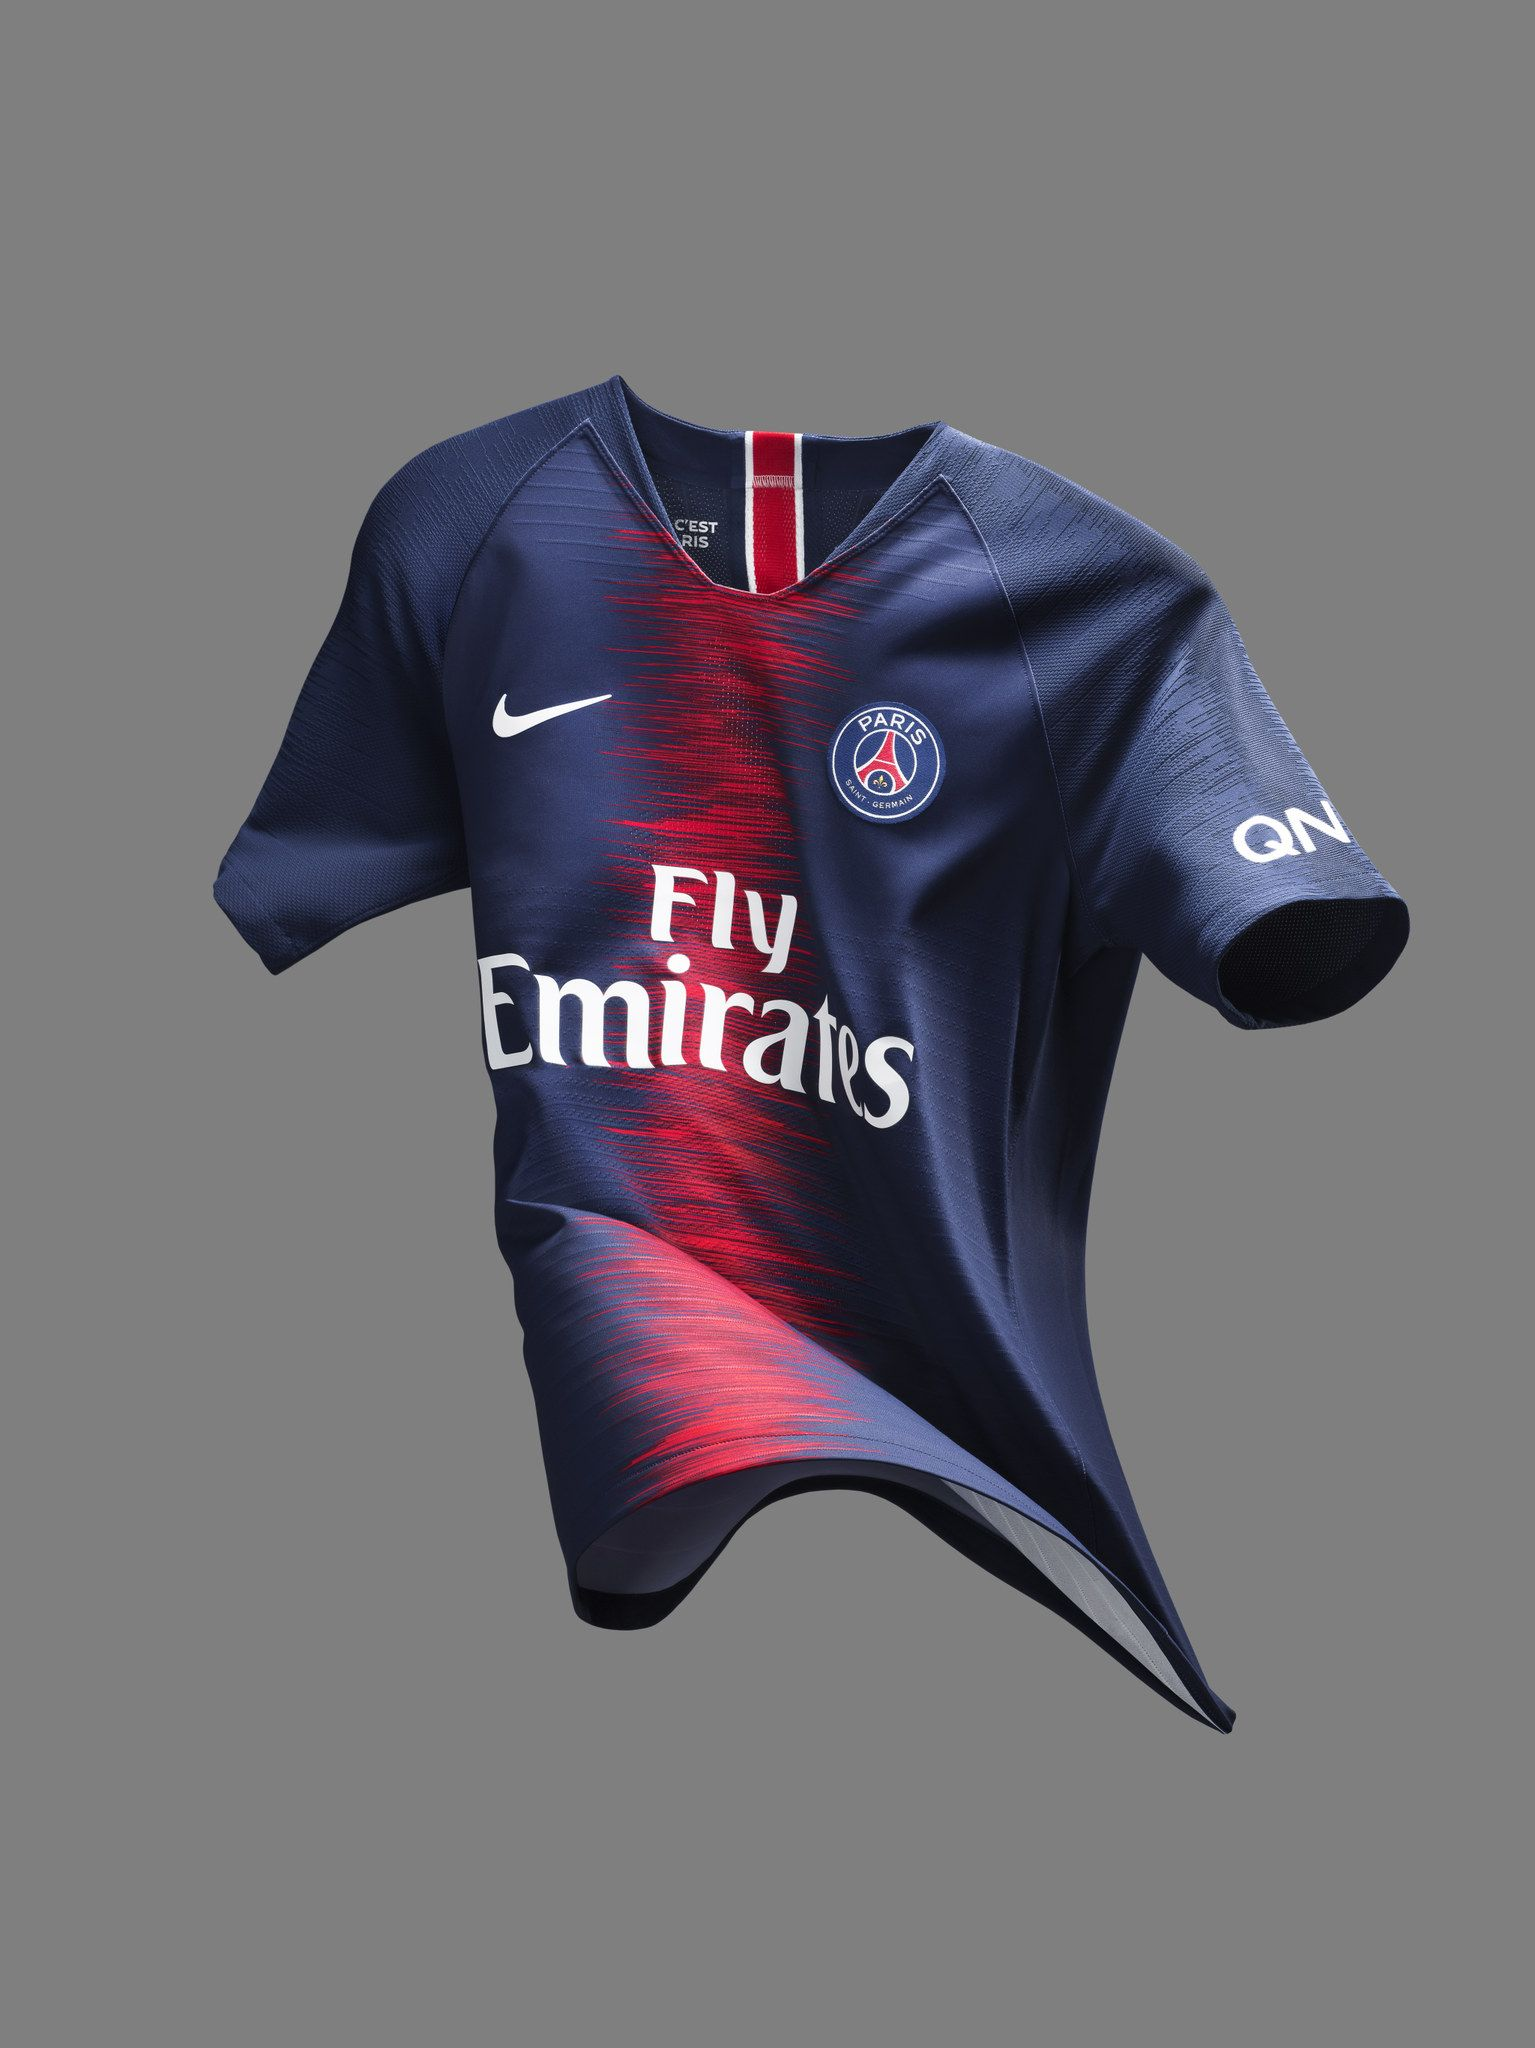 a3c0a78a9effc9 Paris Saint-Germain 2018-19 Nike Home Kit